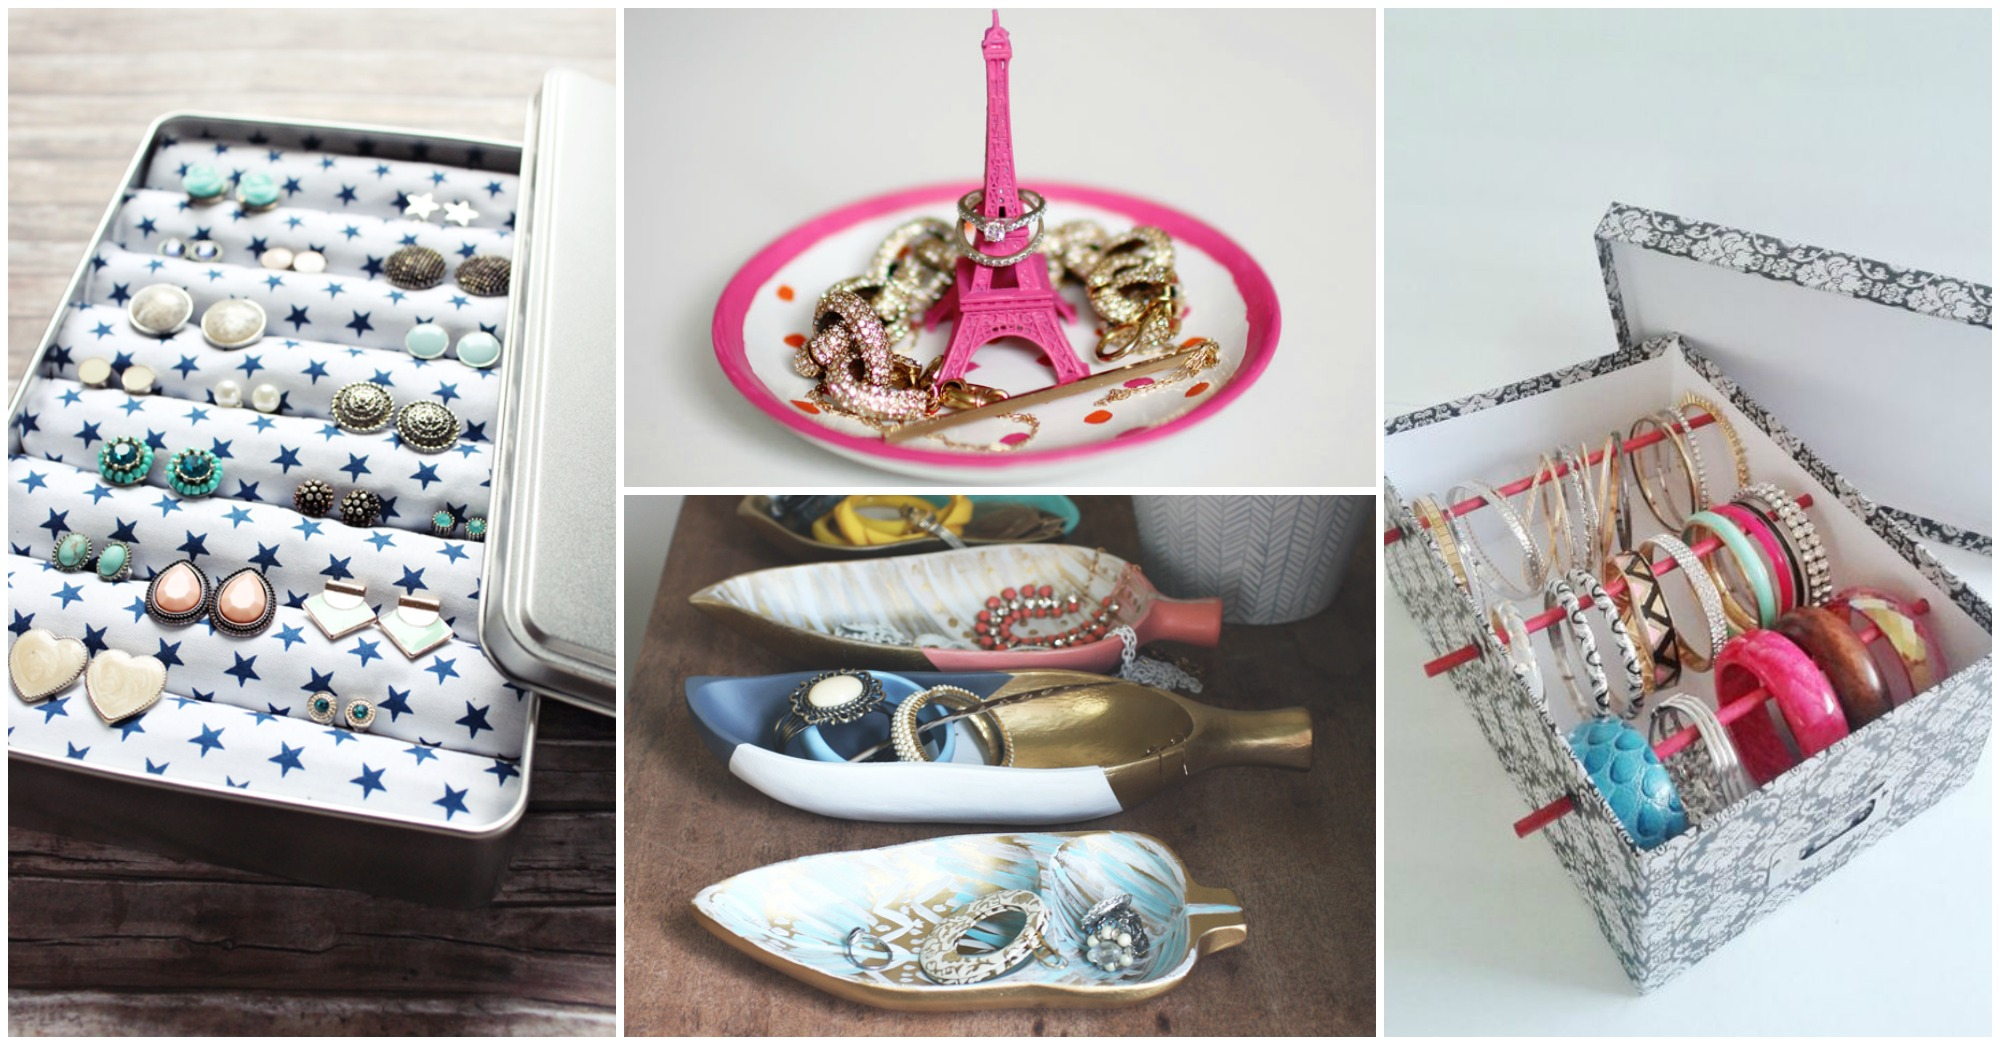 15 Clever DIY Jewelry Storage Ideas That Will Blow Your Mind